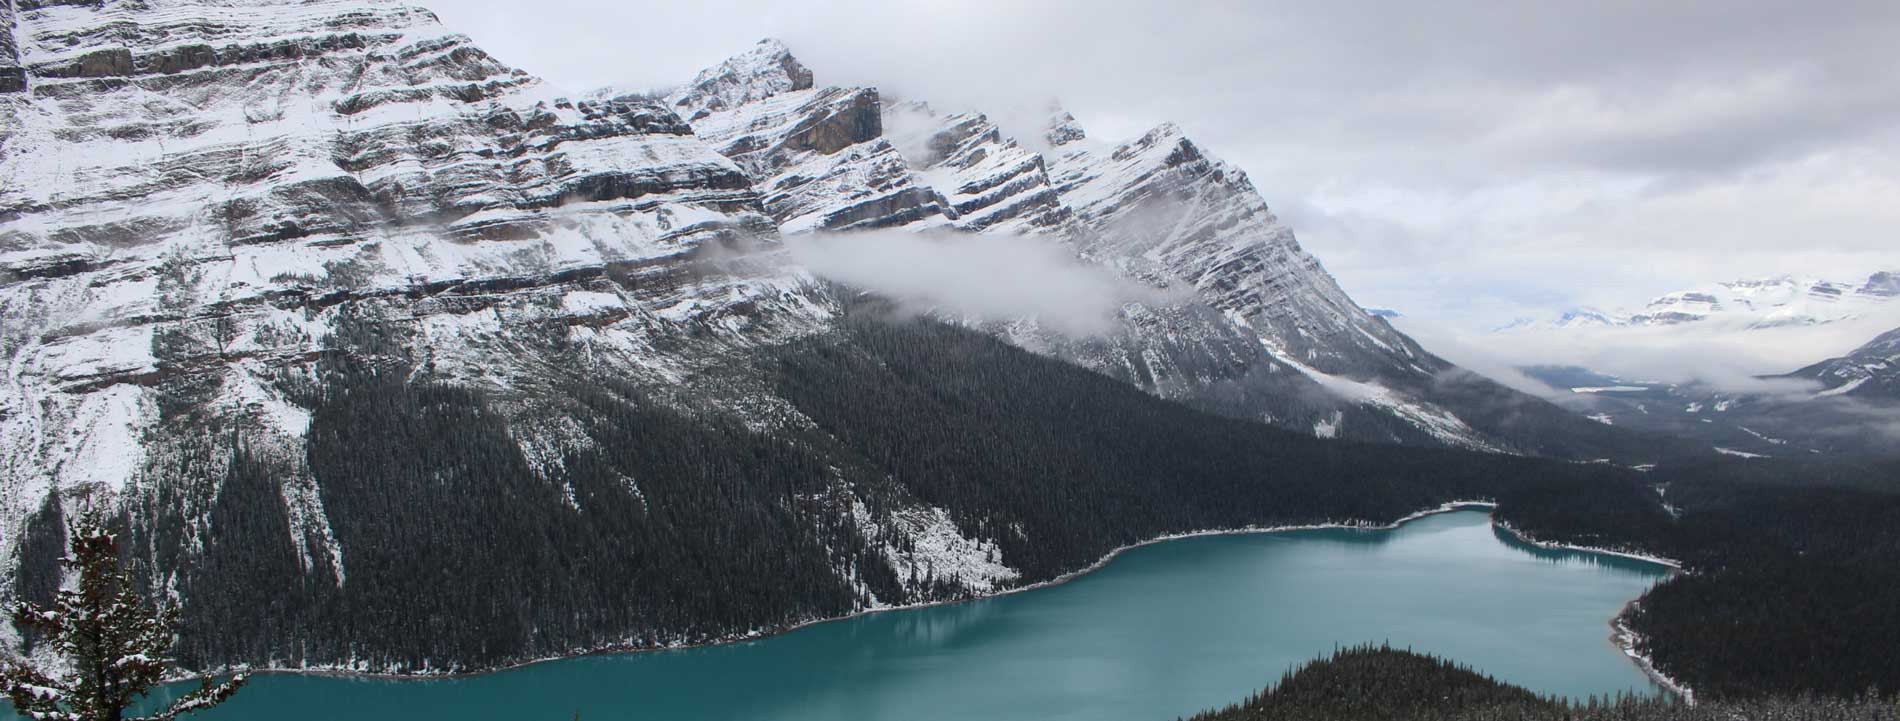 alberta mountains with river running past